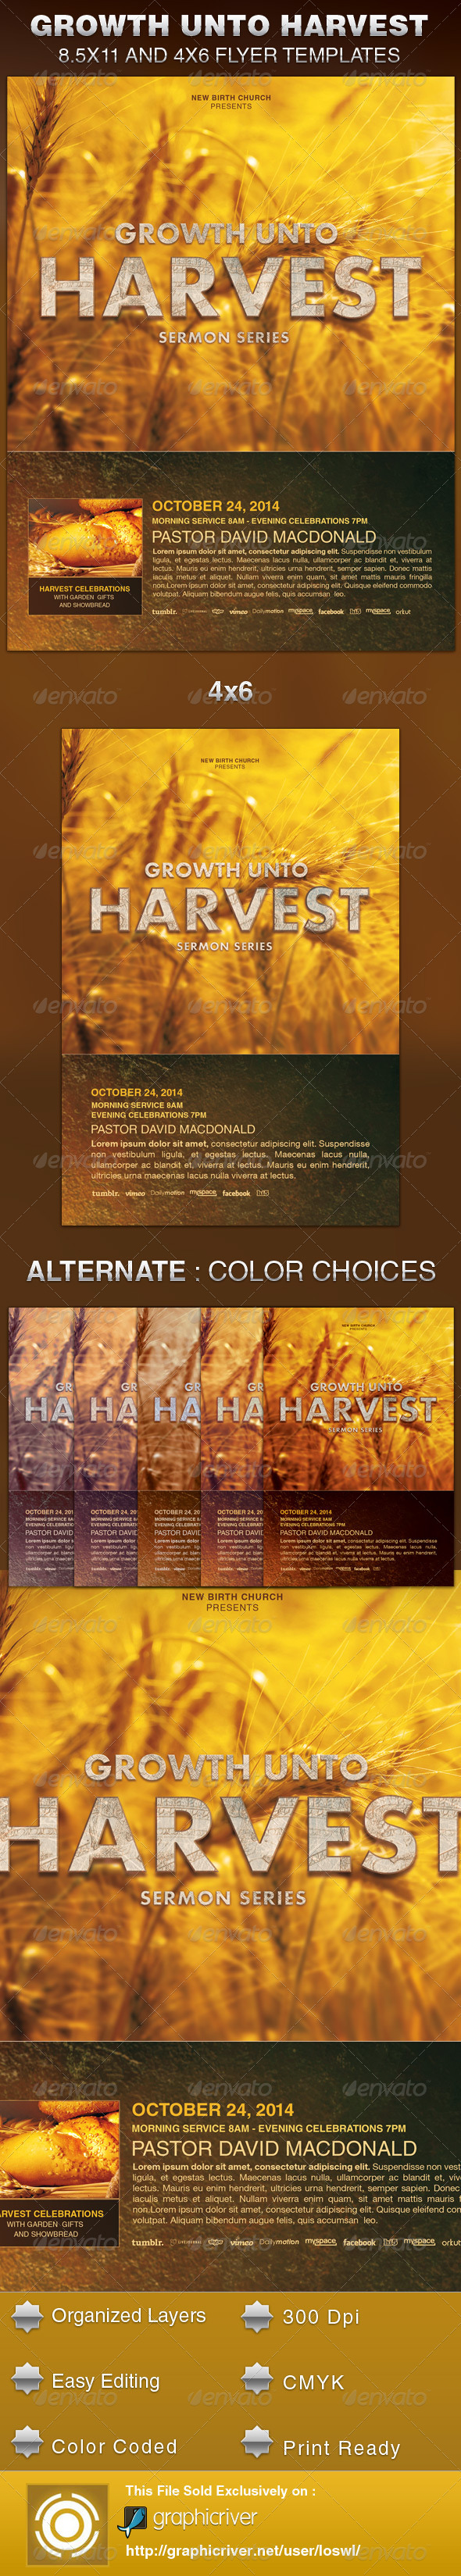 Growth unto Harvest Church Flyer Template - Church Flyers